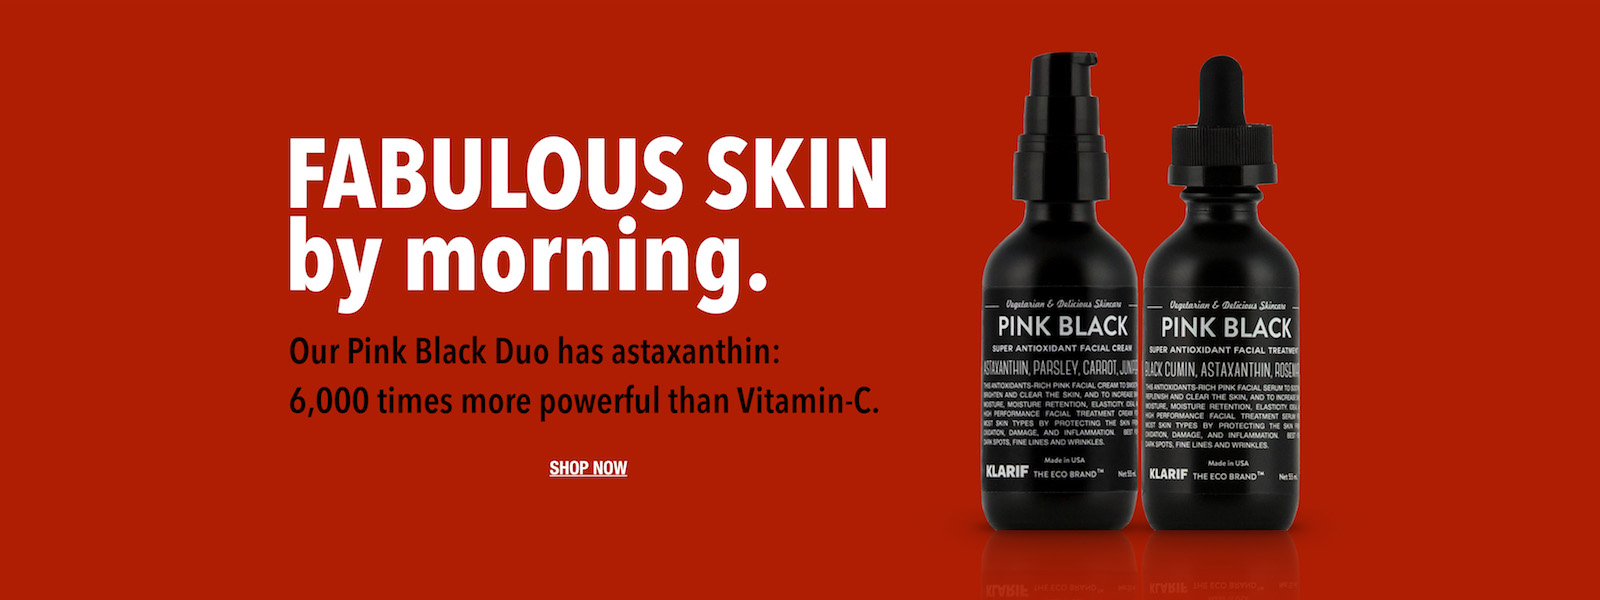 fabulous_skin_by_morning